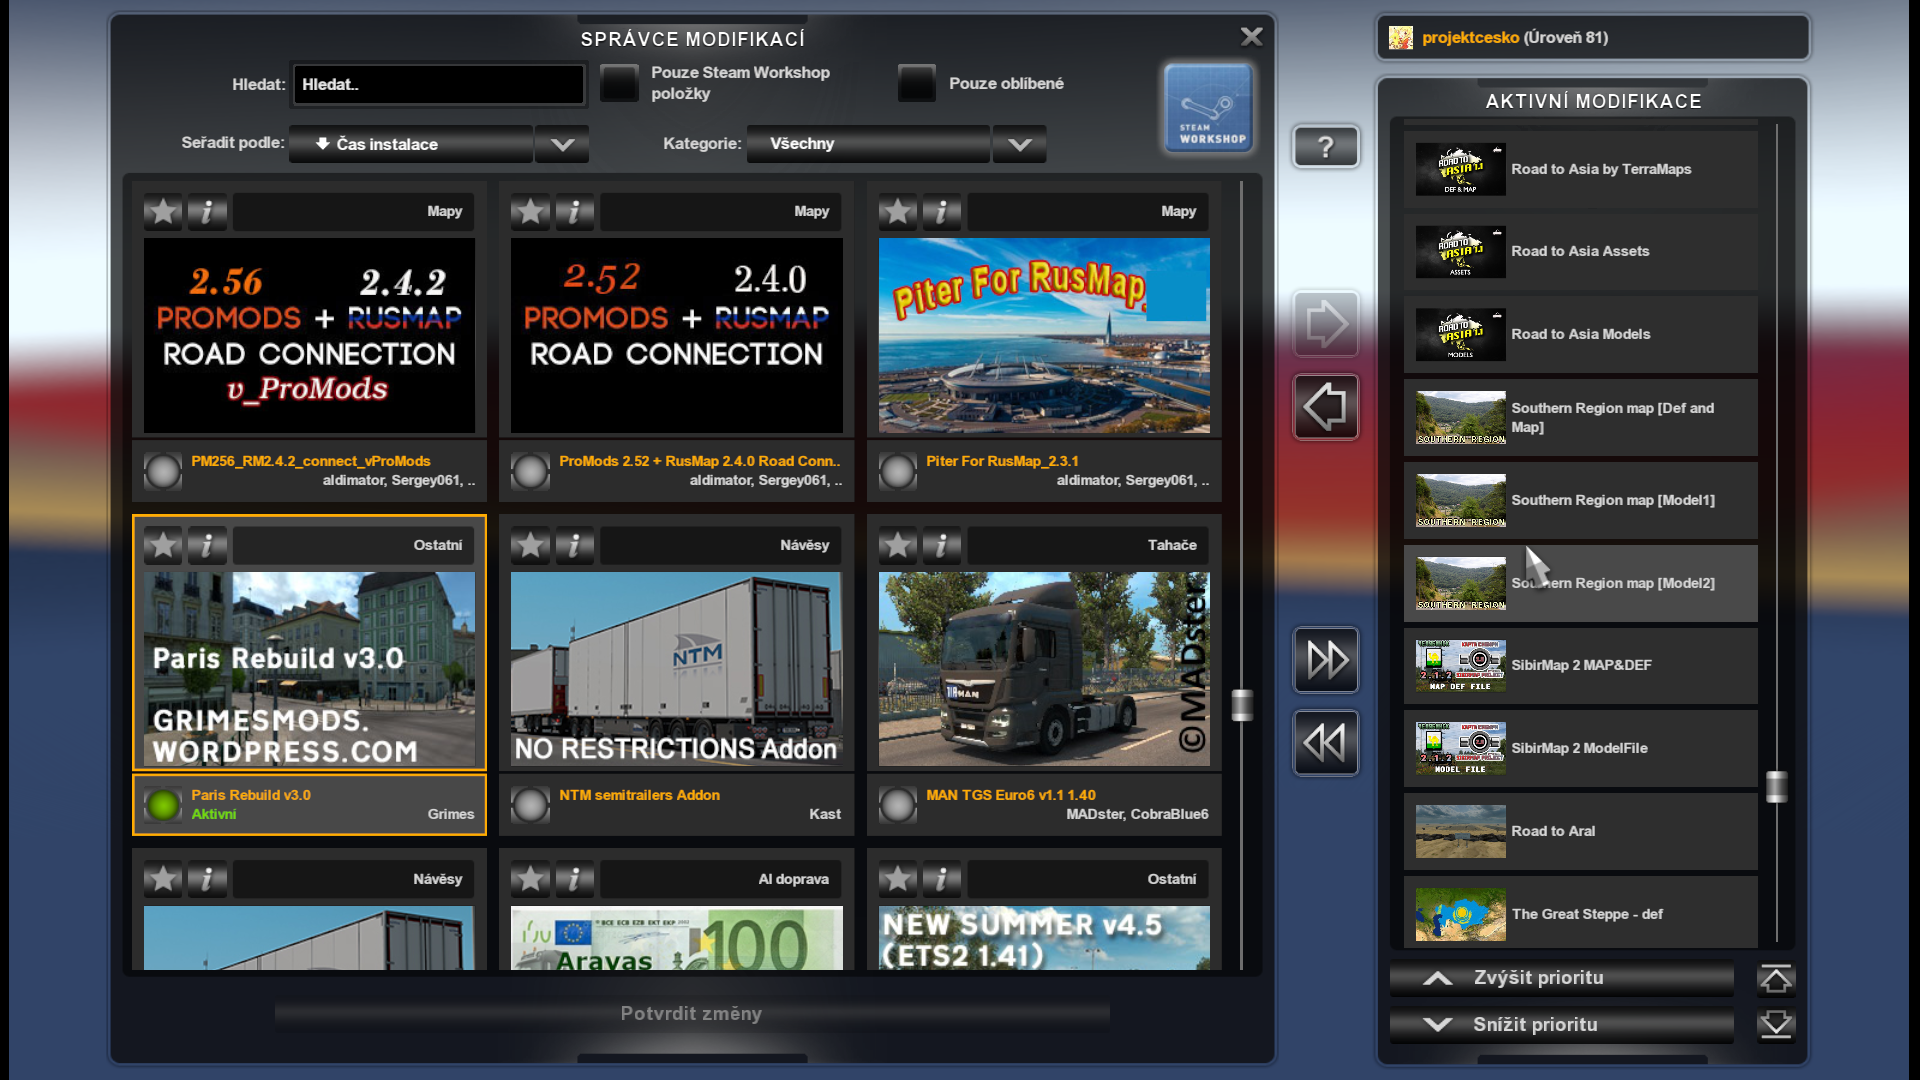 ets2_20210831_143158_00.png